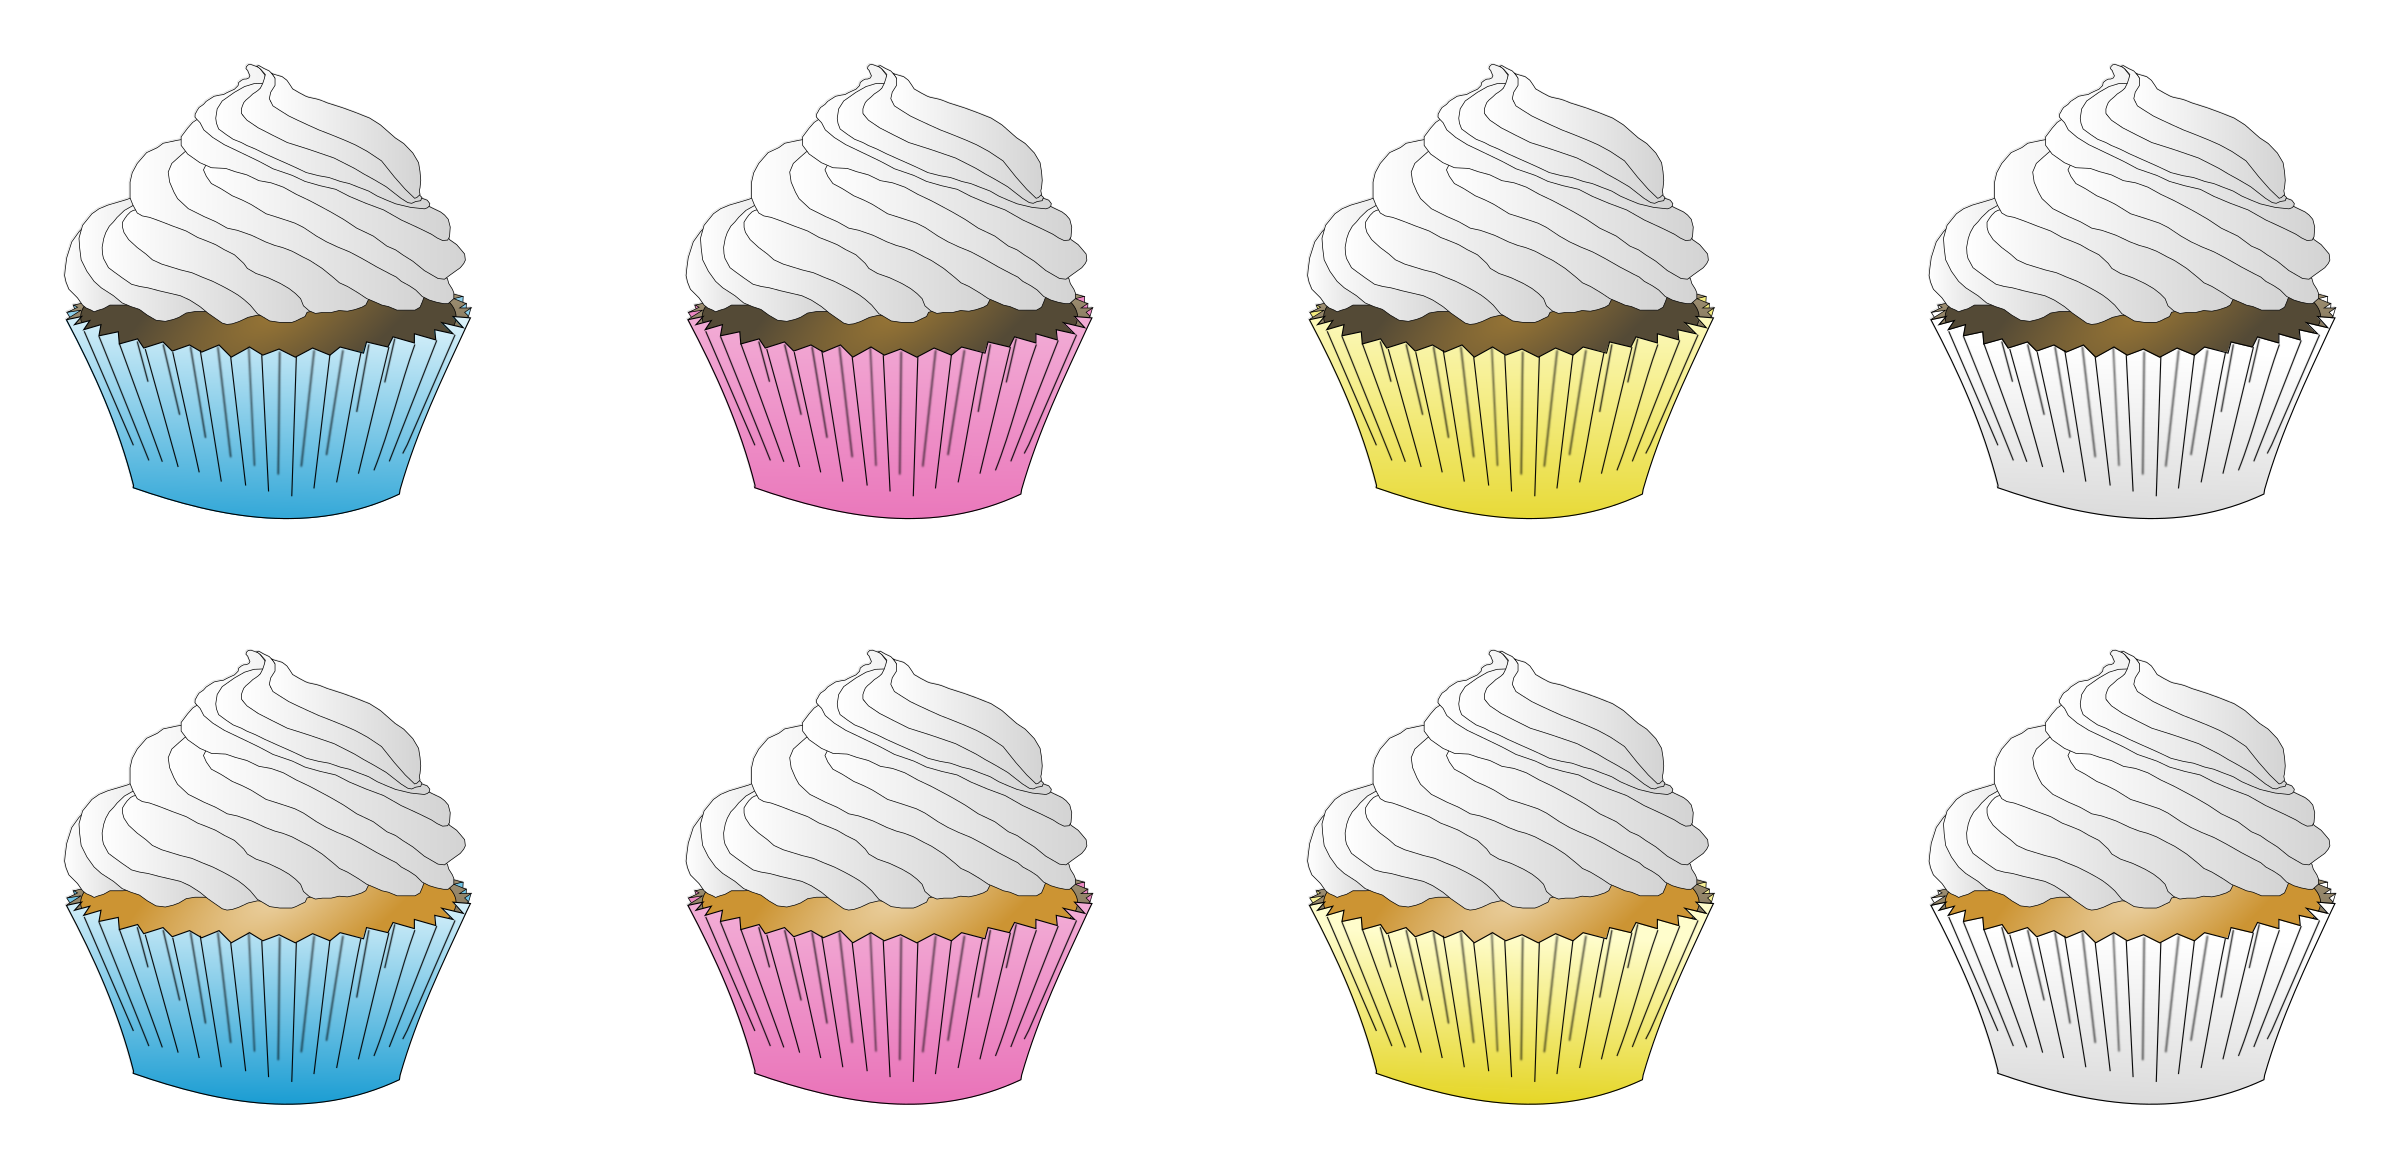 Assorted white frosted icons. Cupcakes clipart buttercream